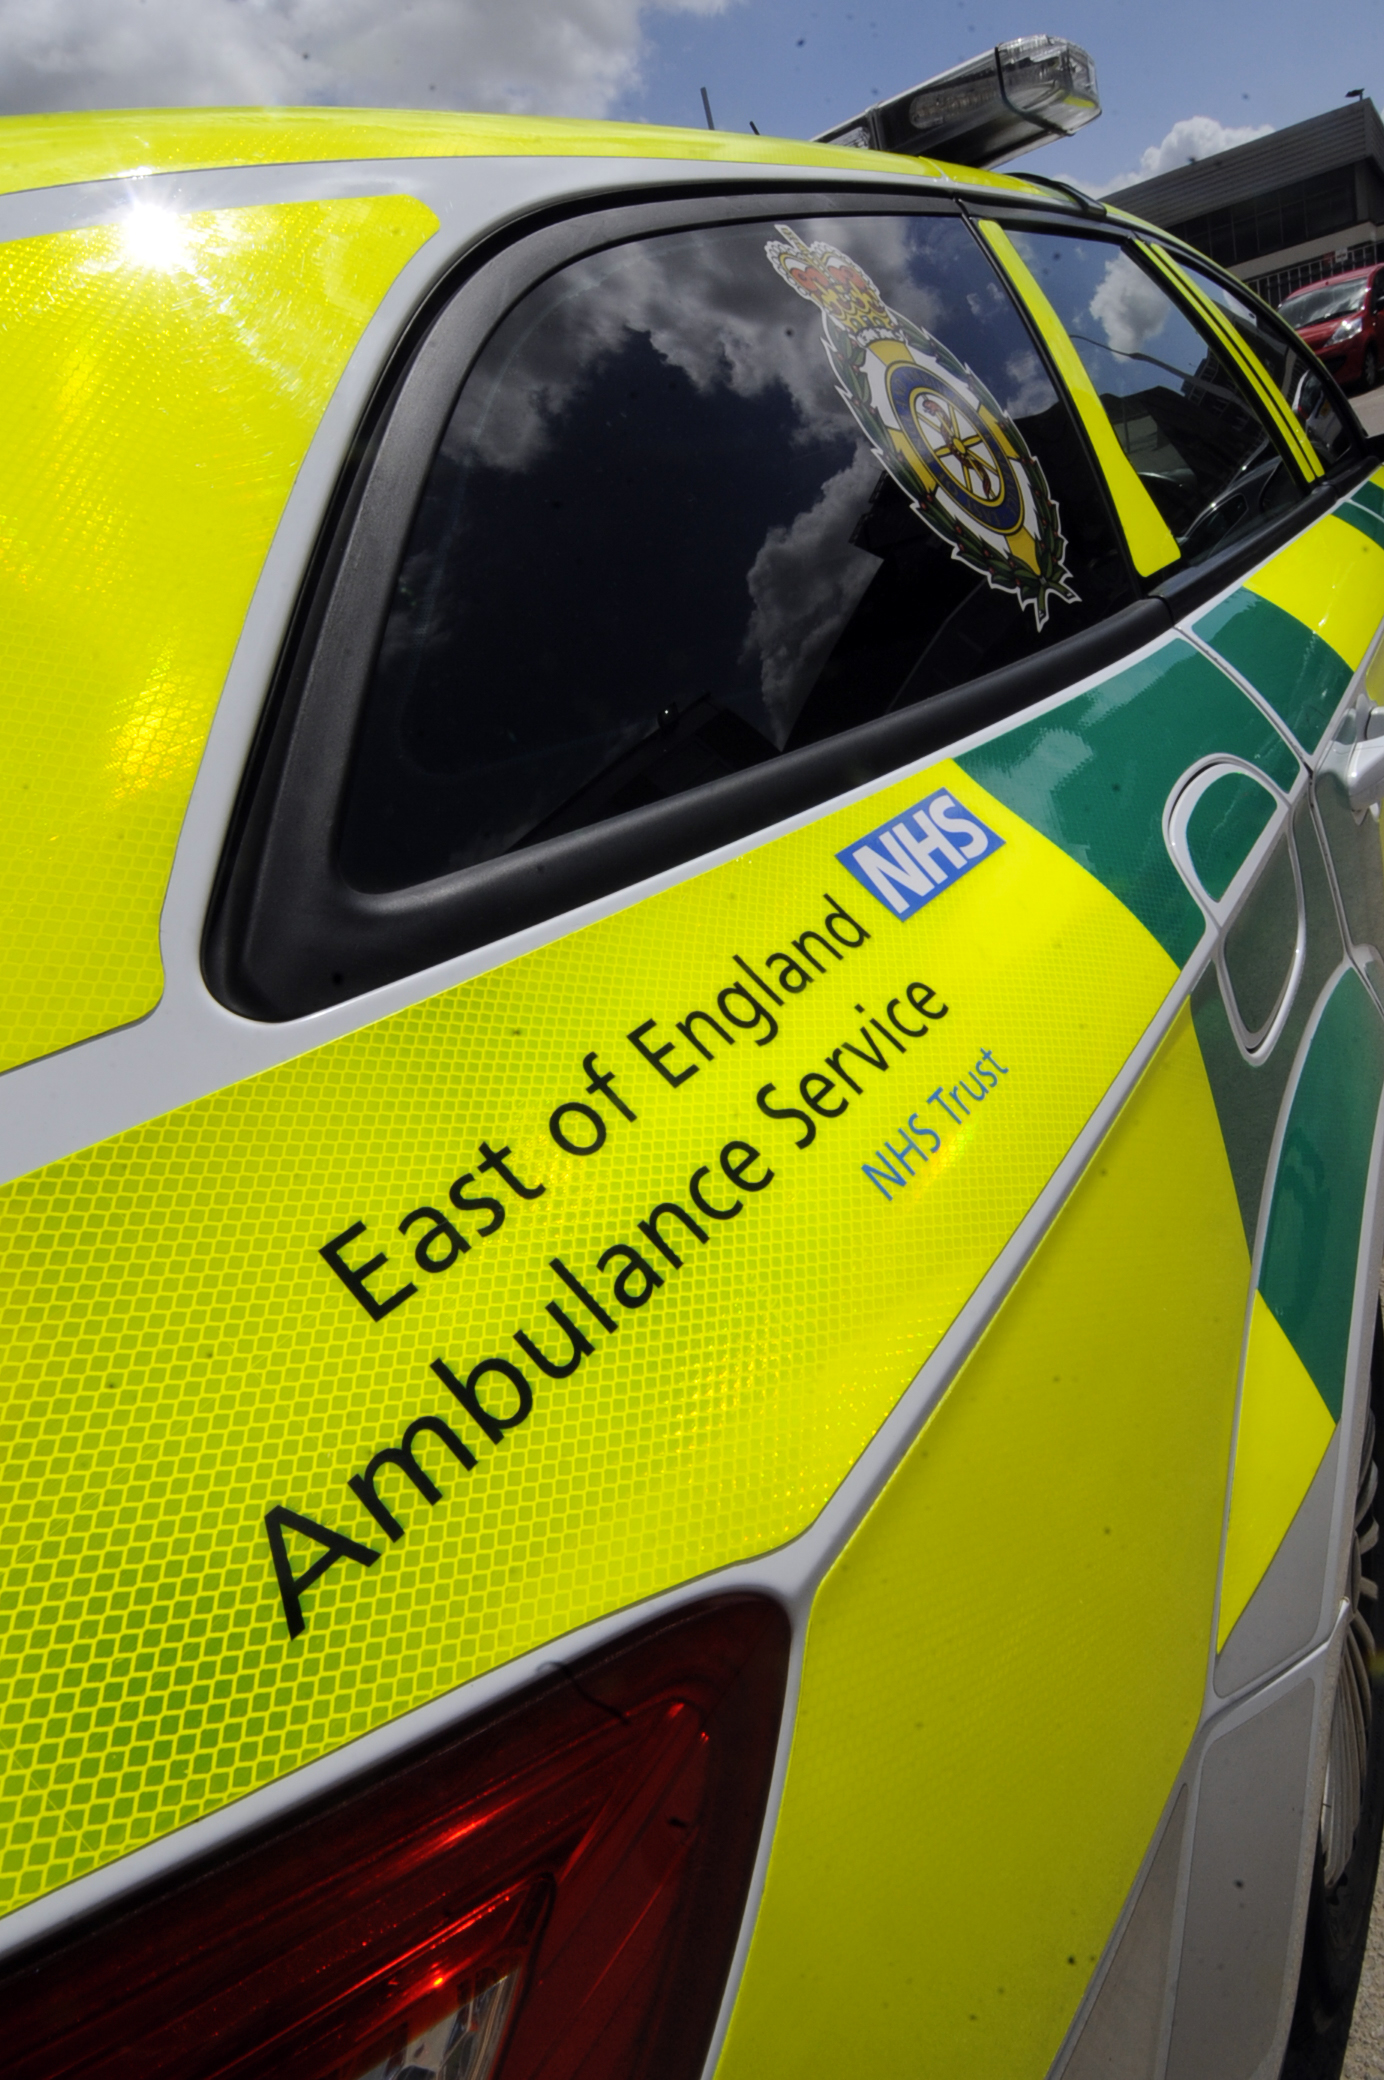 East of England Ambulance service sees three applications for every post advertised